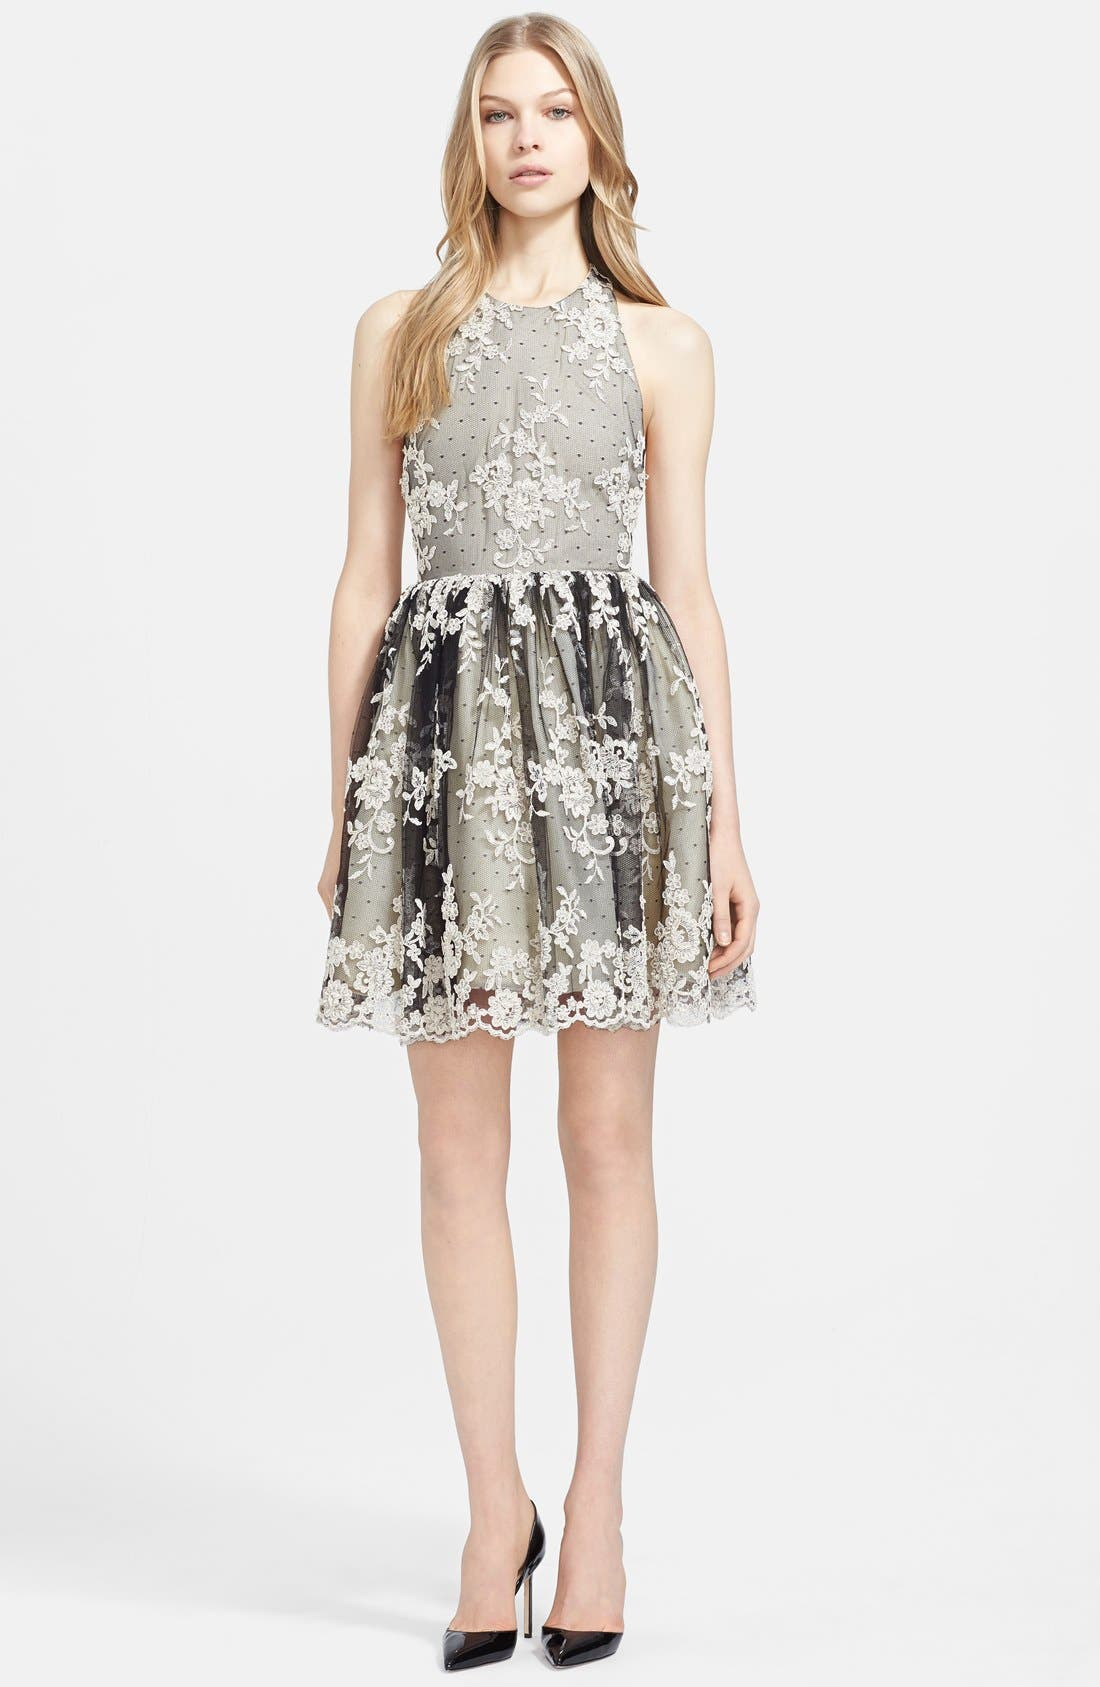 Main Image - Alice + Olivia 'Betrice' T-back Lace Fit & Flare Dress